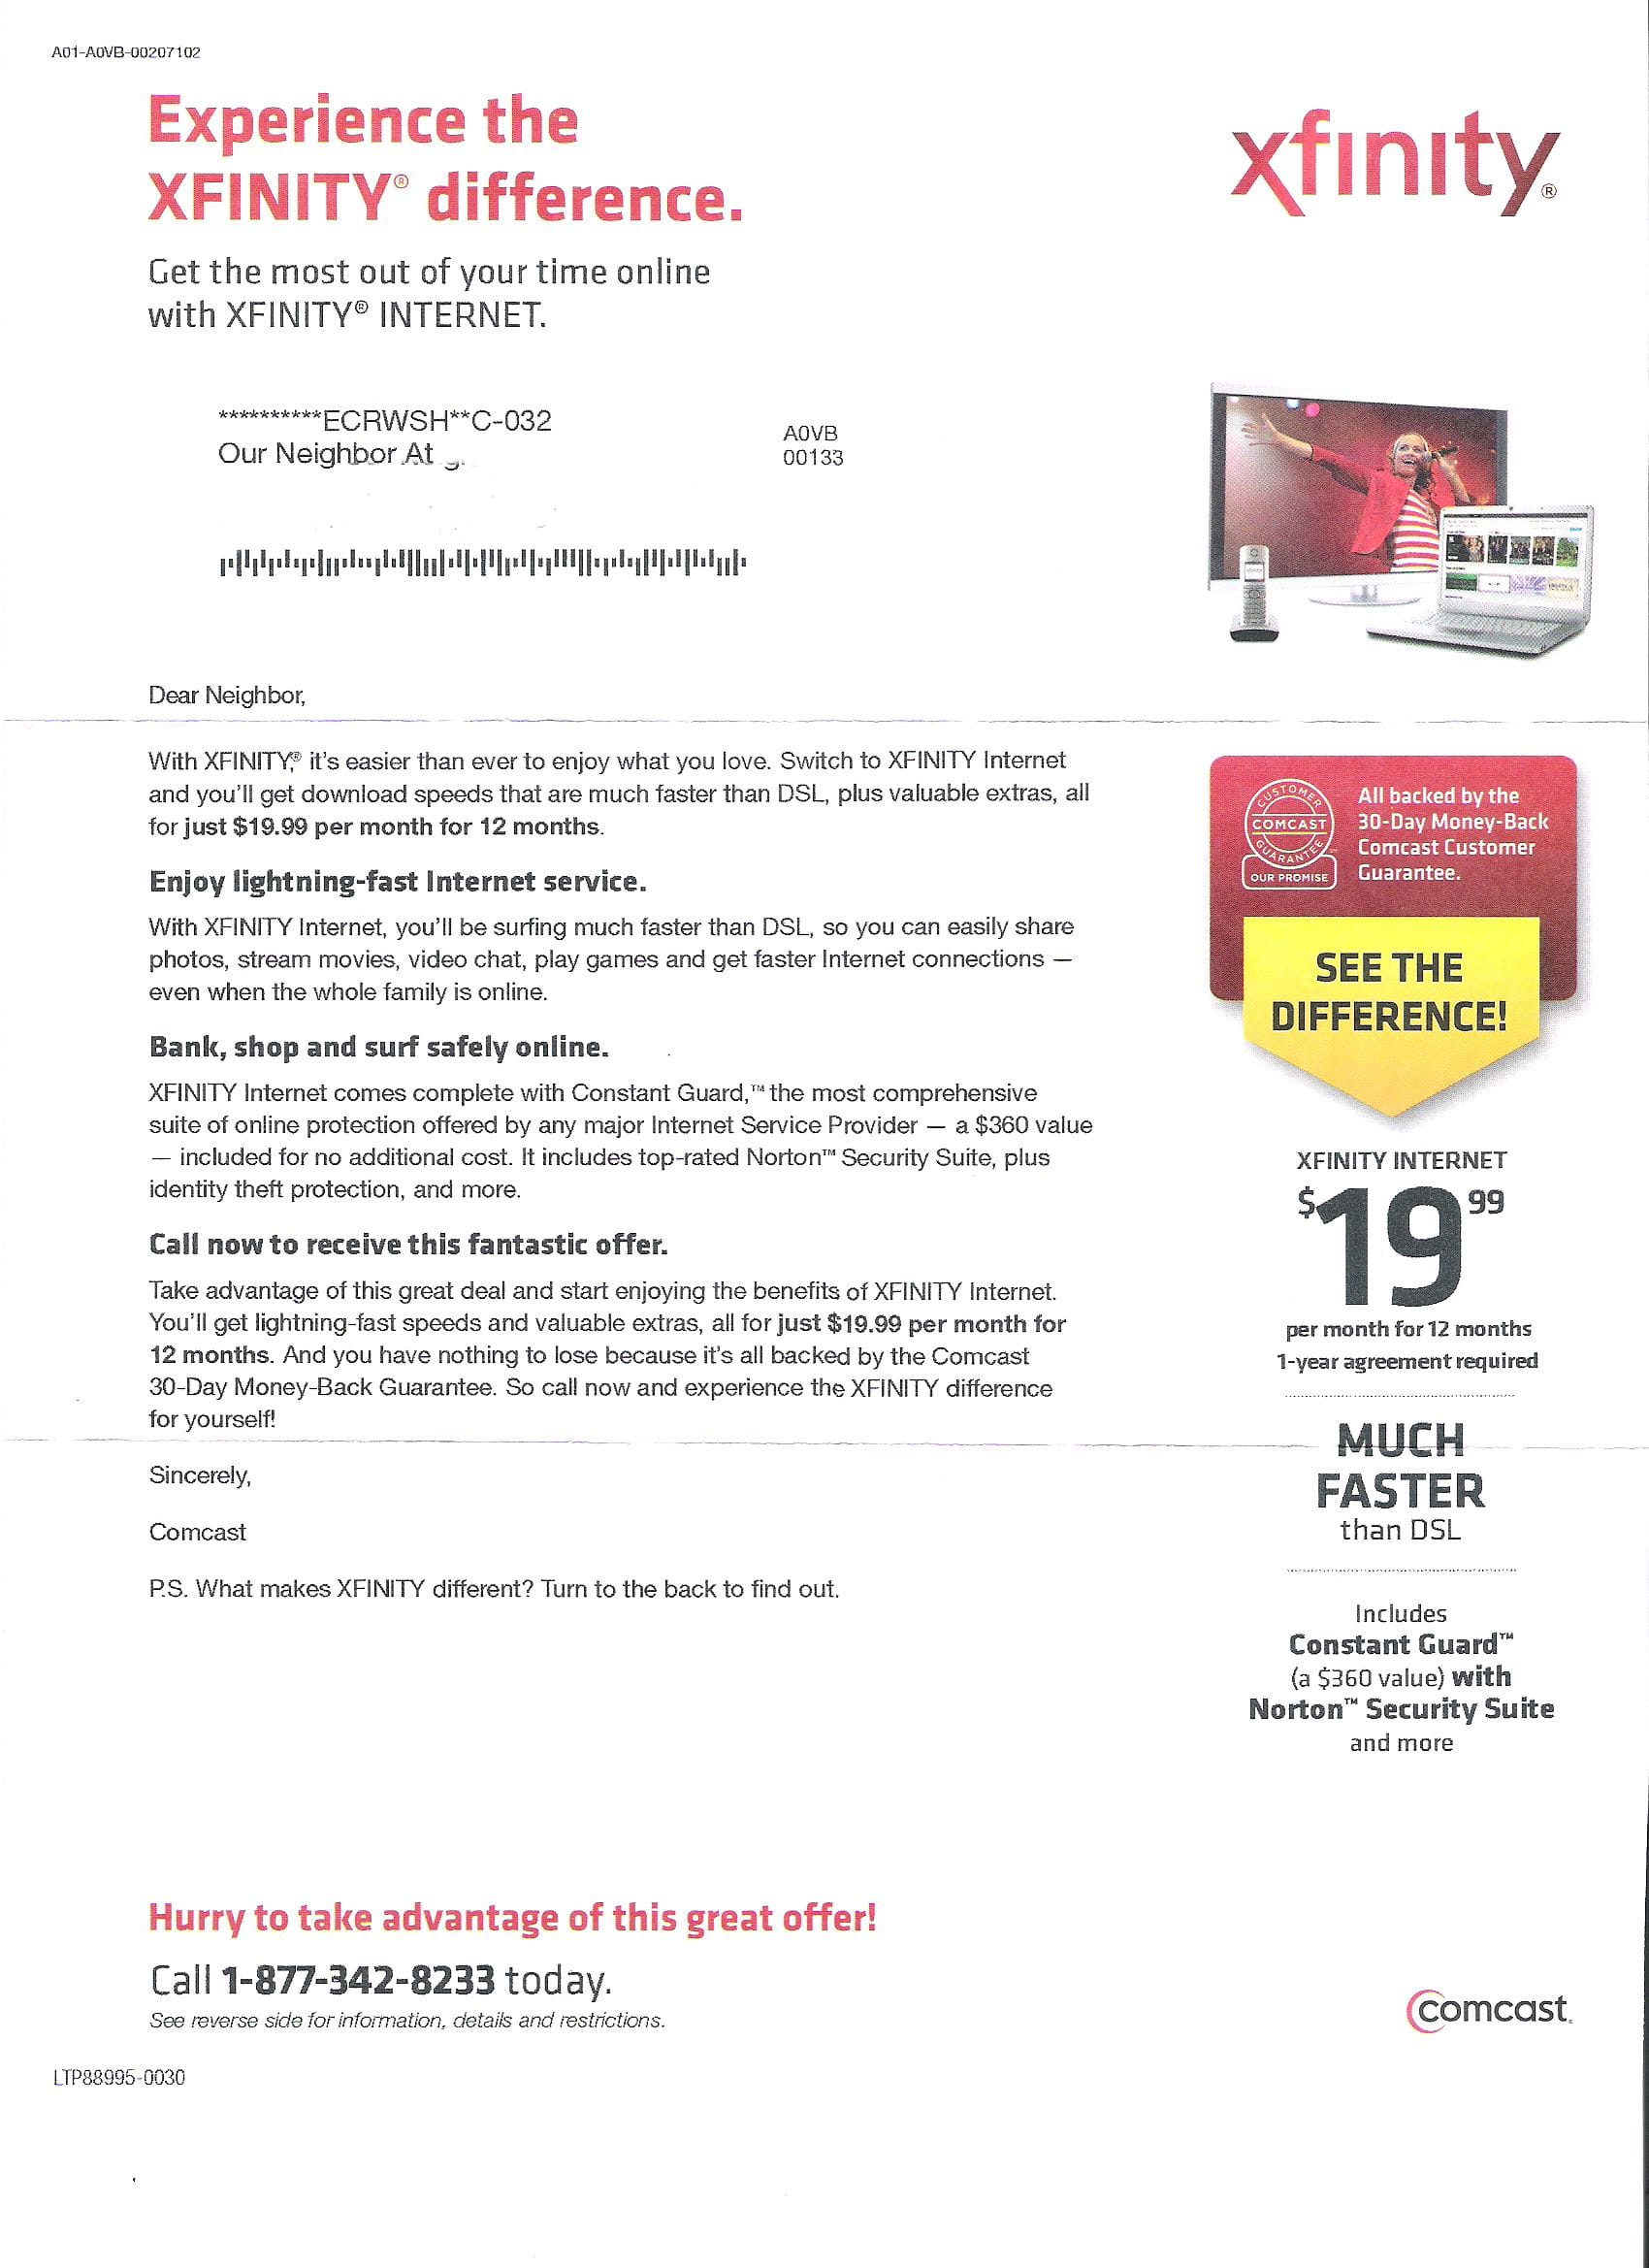 Ultimate Comcast / Infinity Internet deal- $19.99/Month for 1 year with no  additional